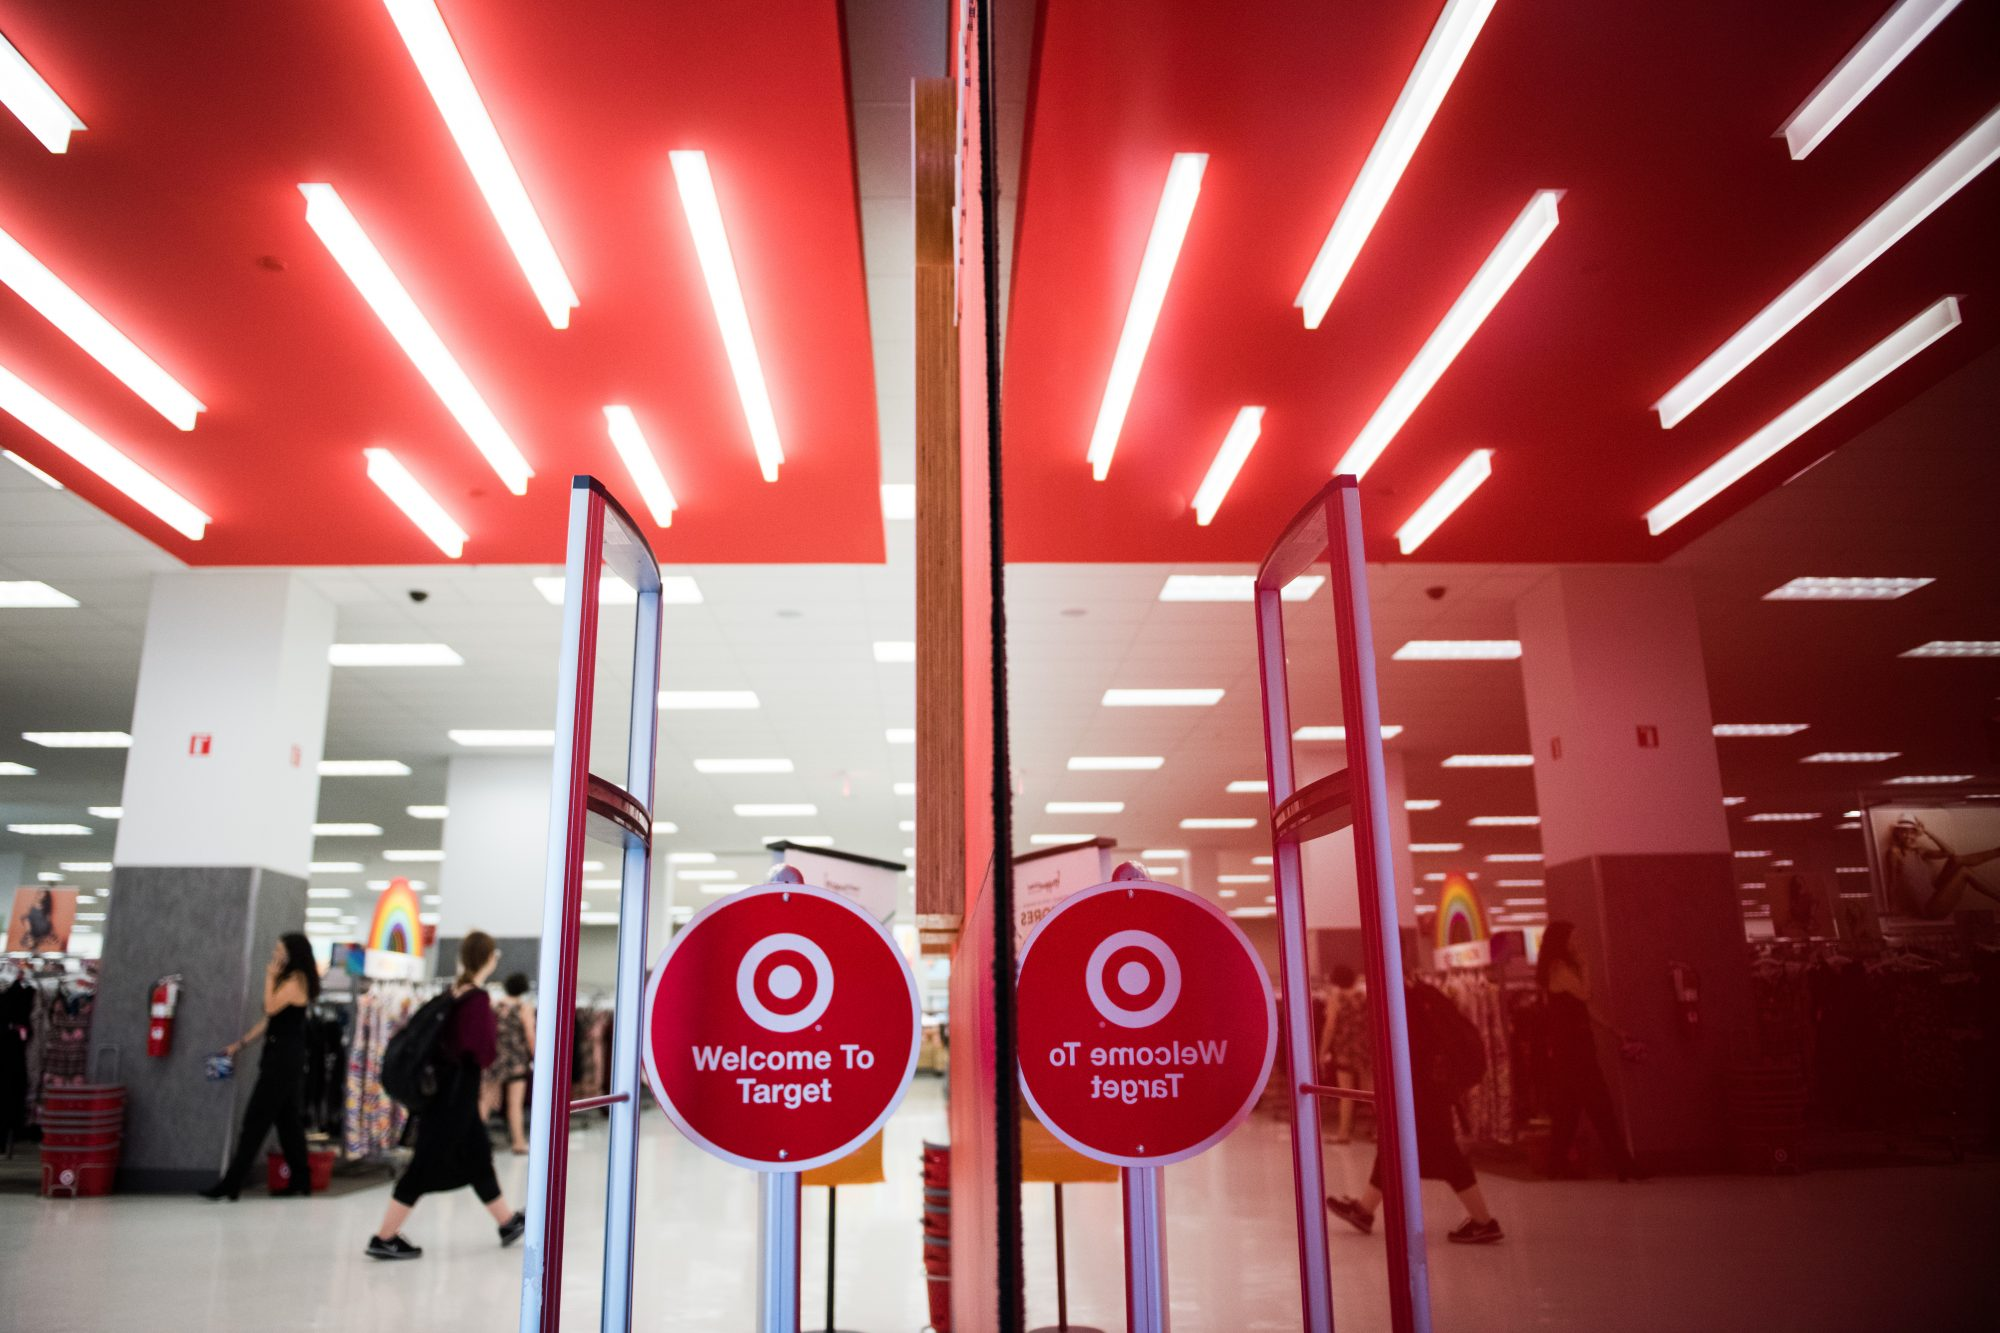 Targets Launching Special Holiday Deals This Weekend